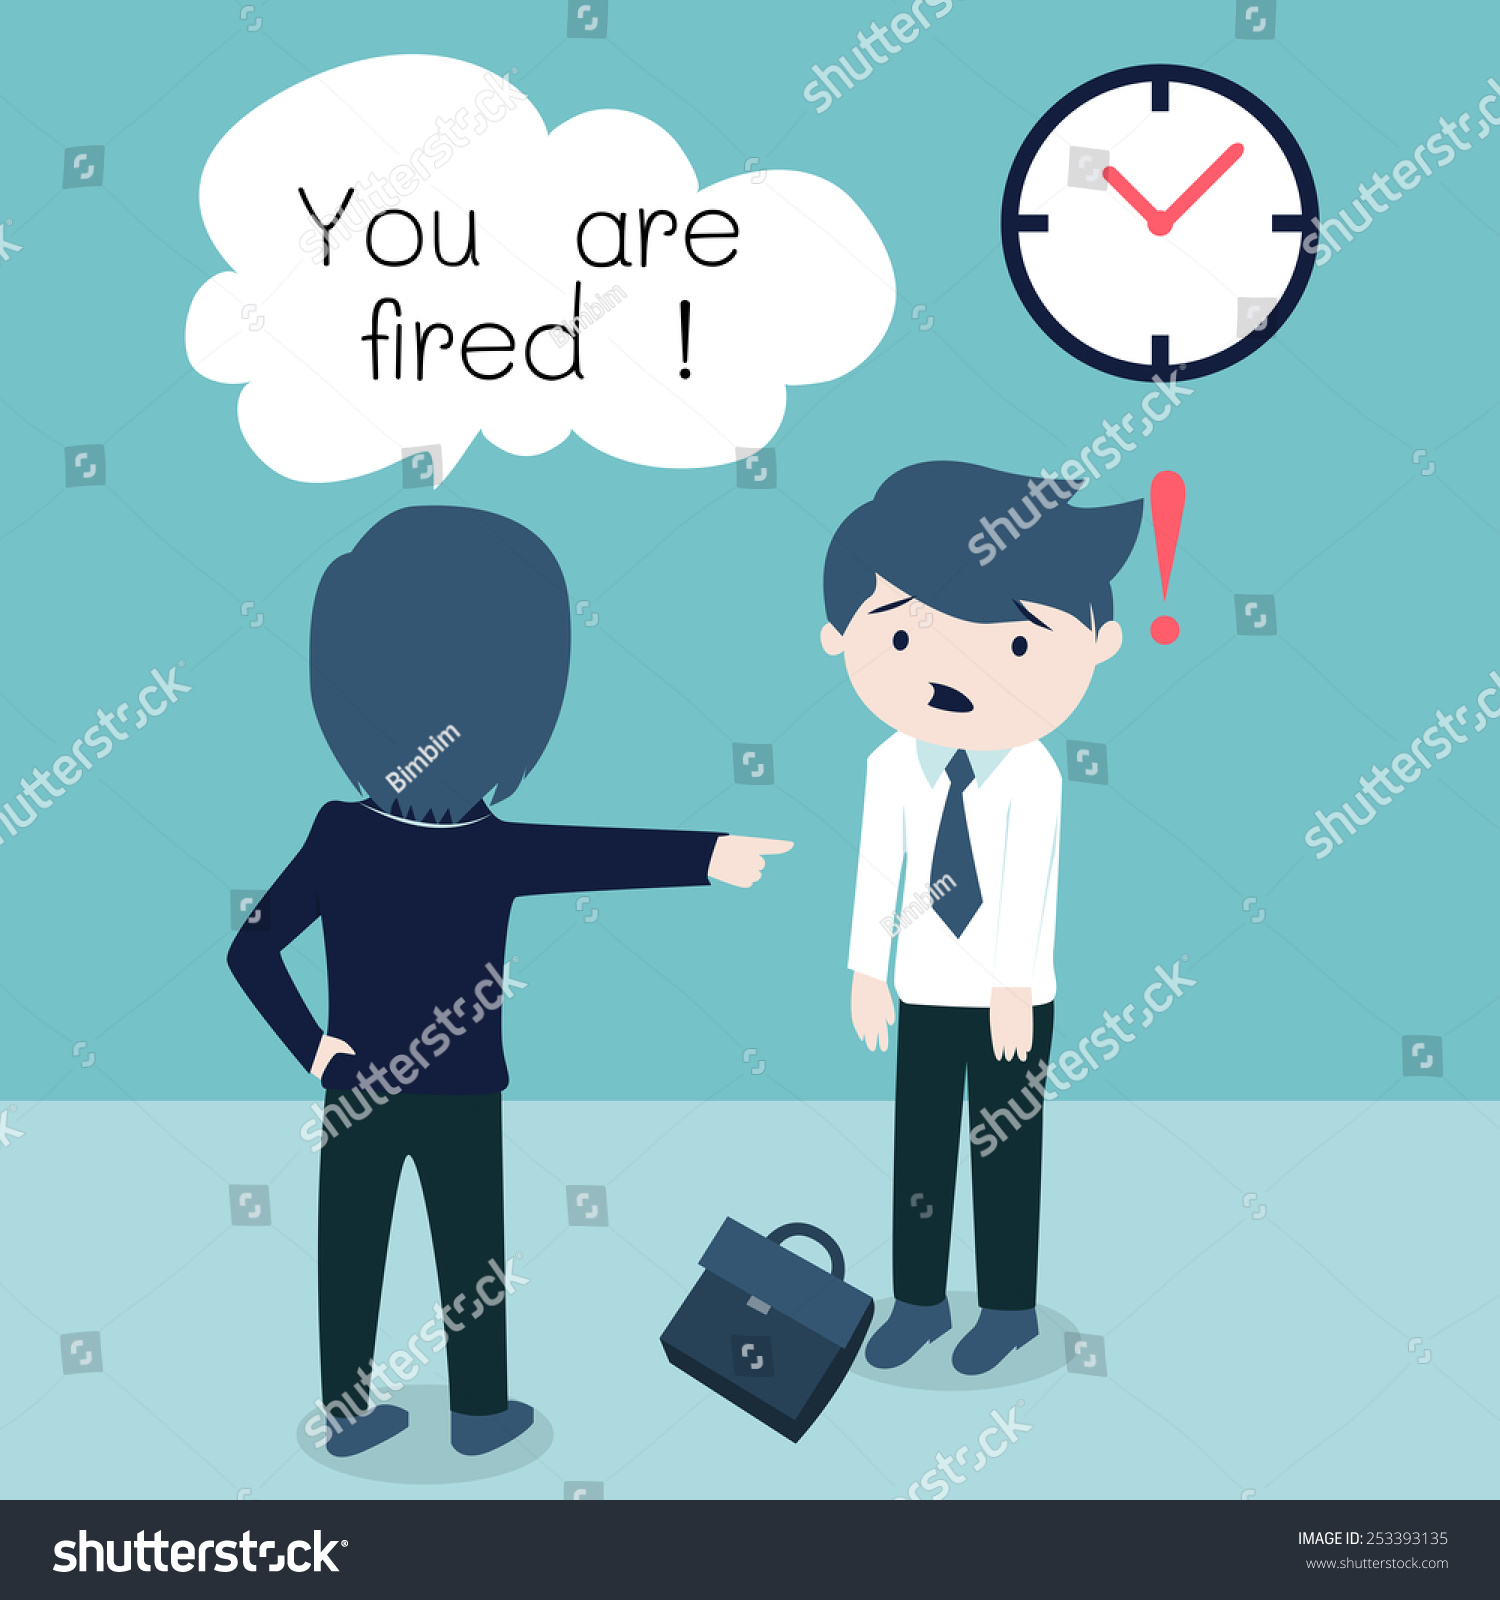 salary man office staff getting fired stock vector  a salary man or and office staff getting fired due to he came to work late